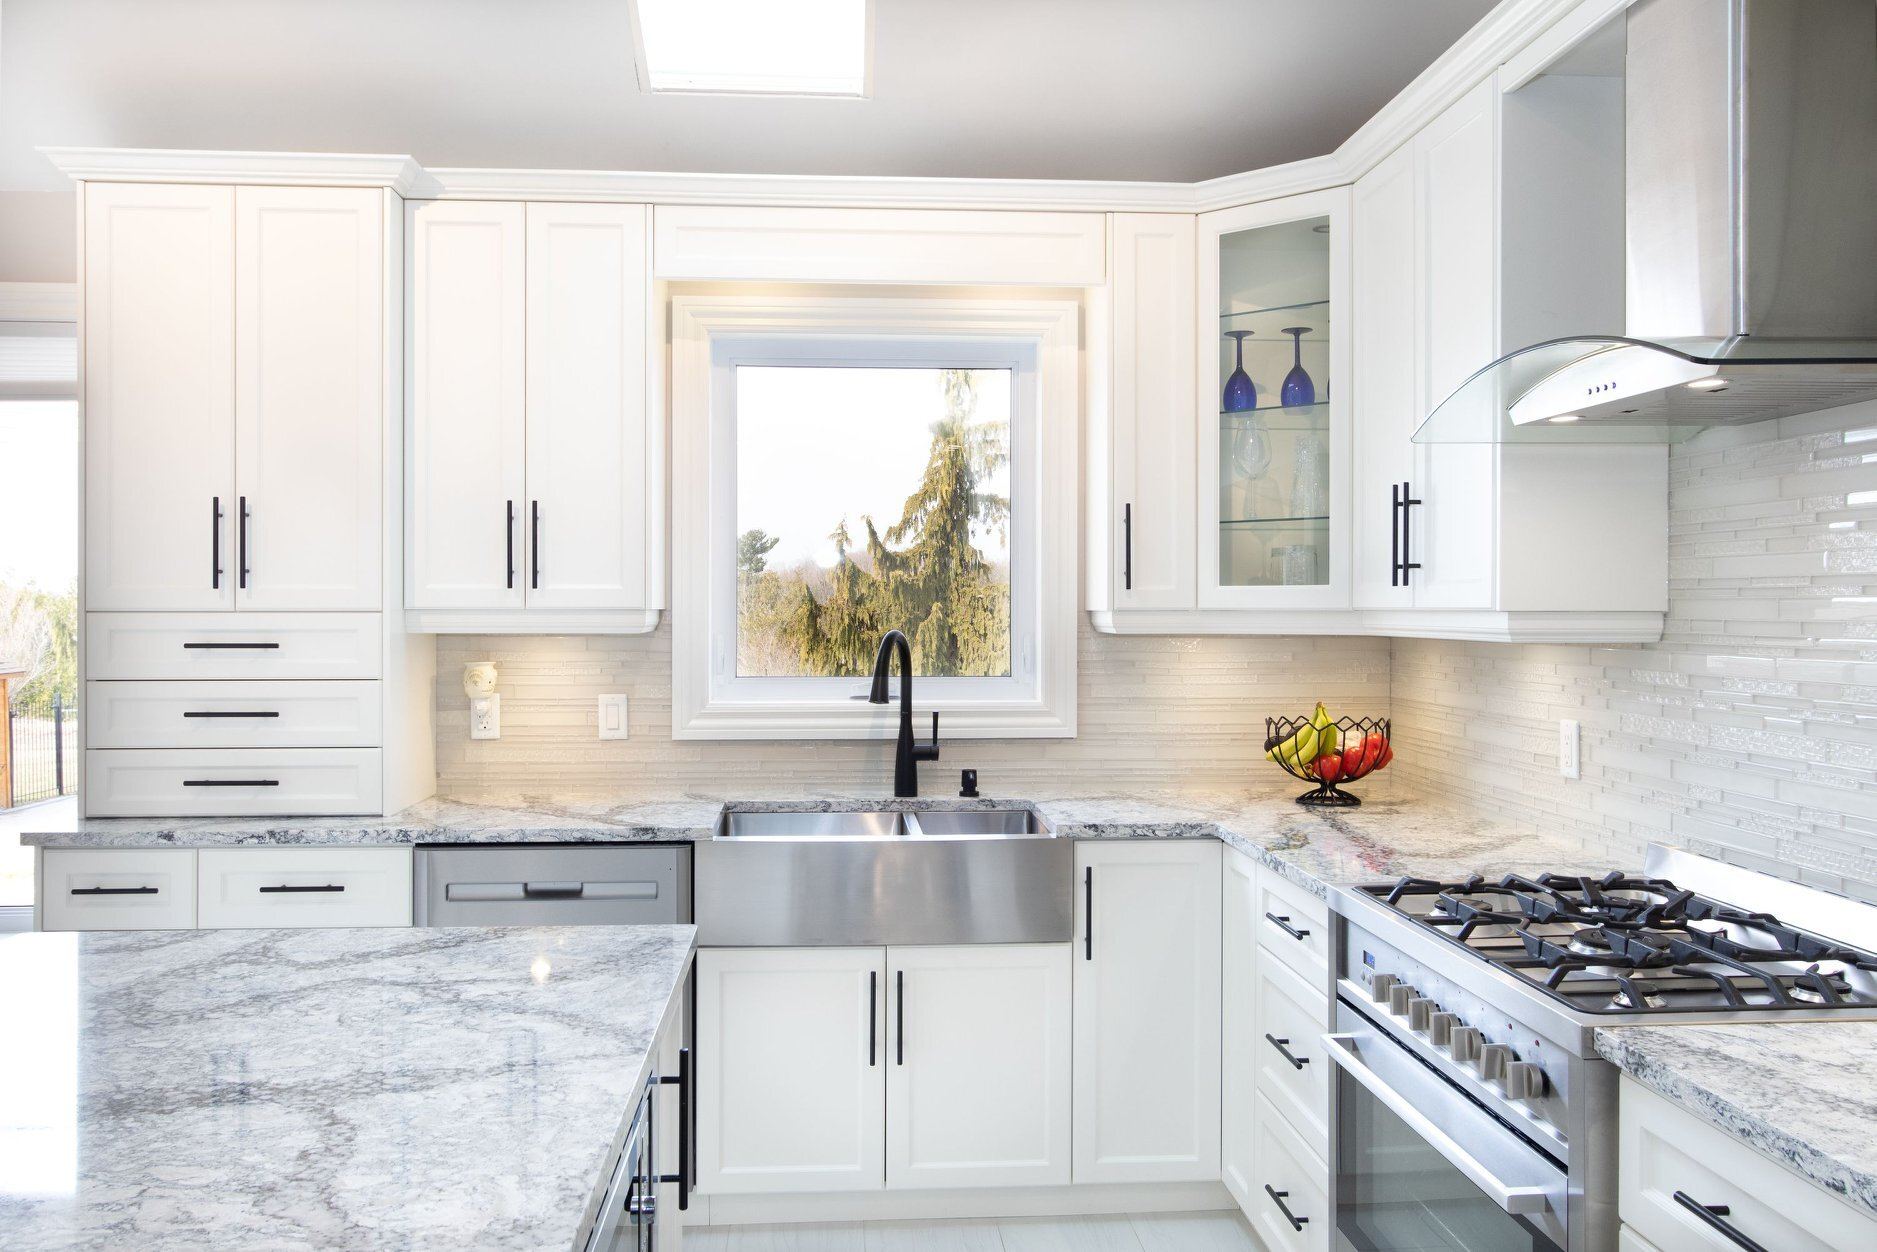 Types Of Kitchen Renovations Time And Budget You Should Plan On For Each Multi Trade Building Services